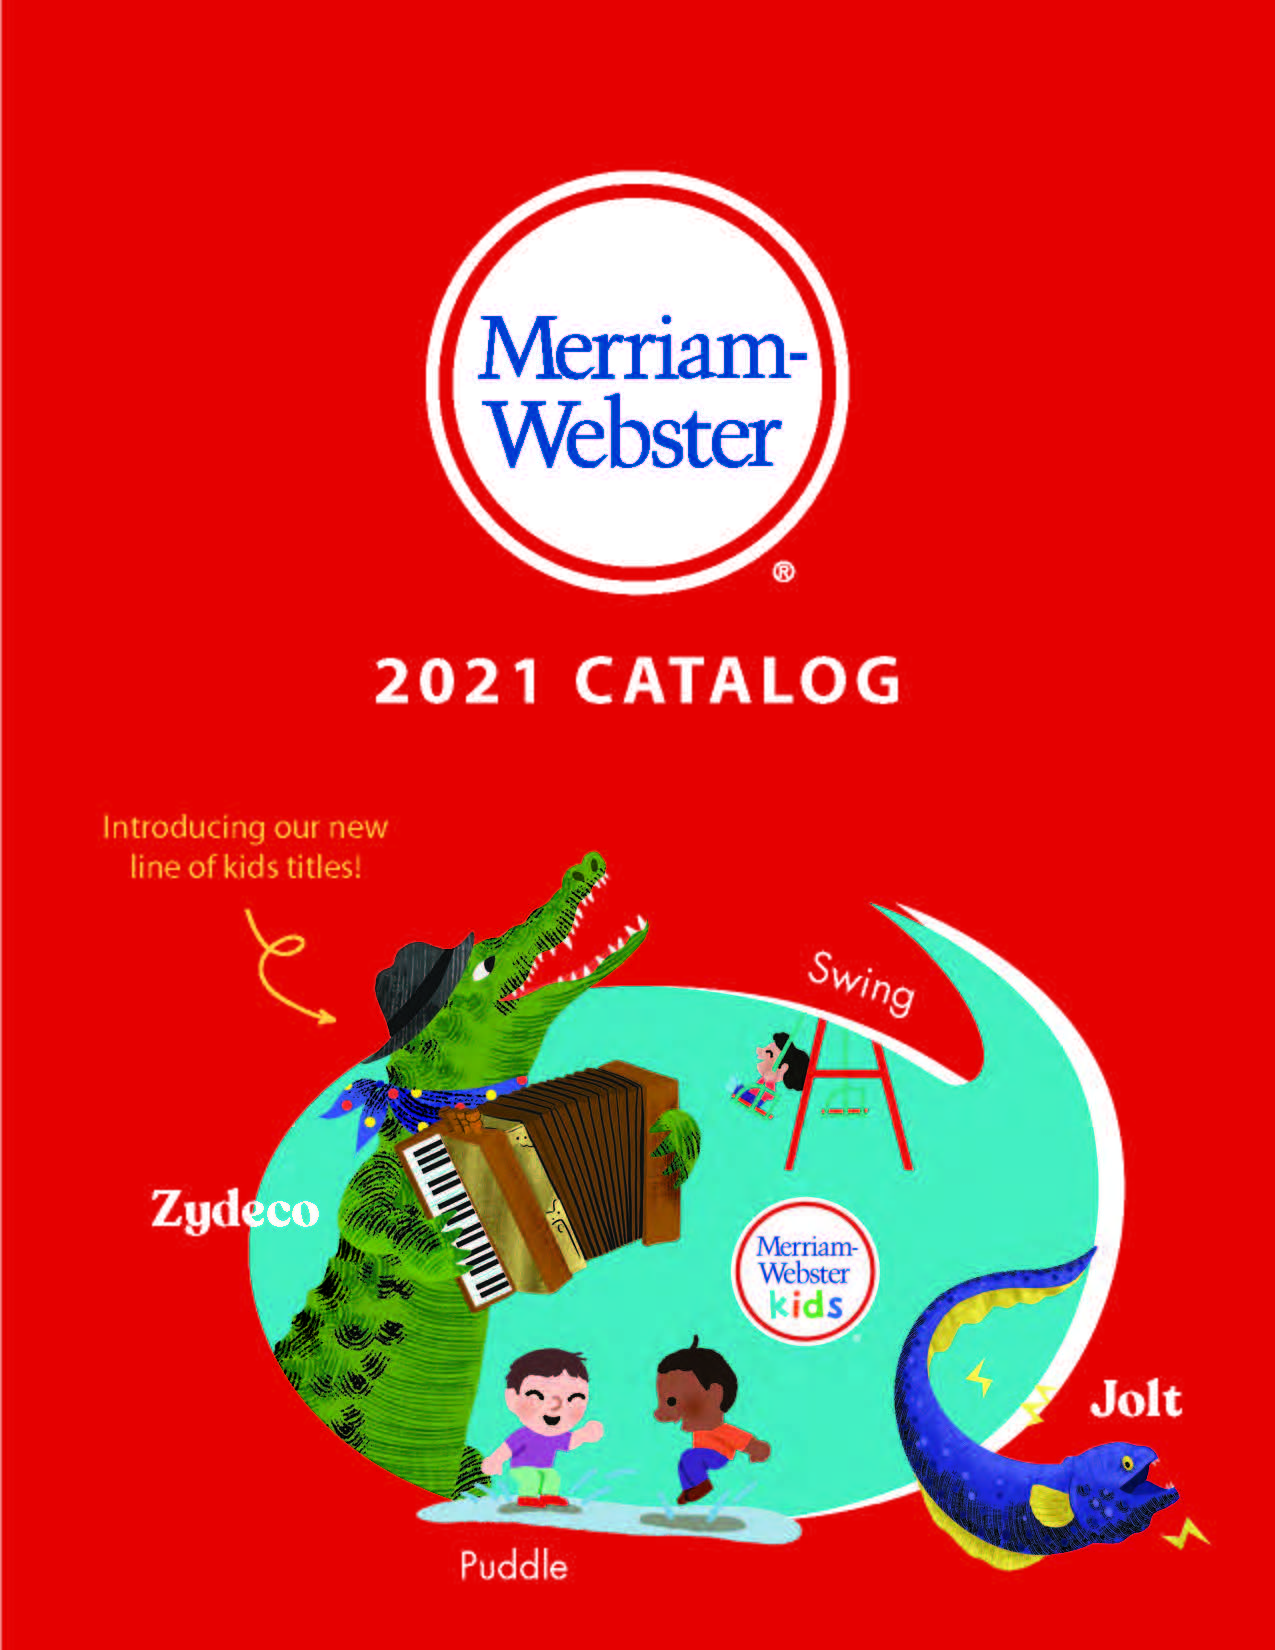 Merriam-Webster - New Titles Only